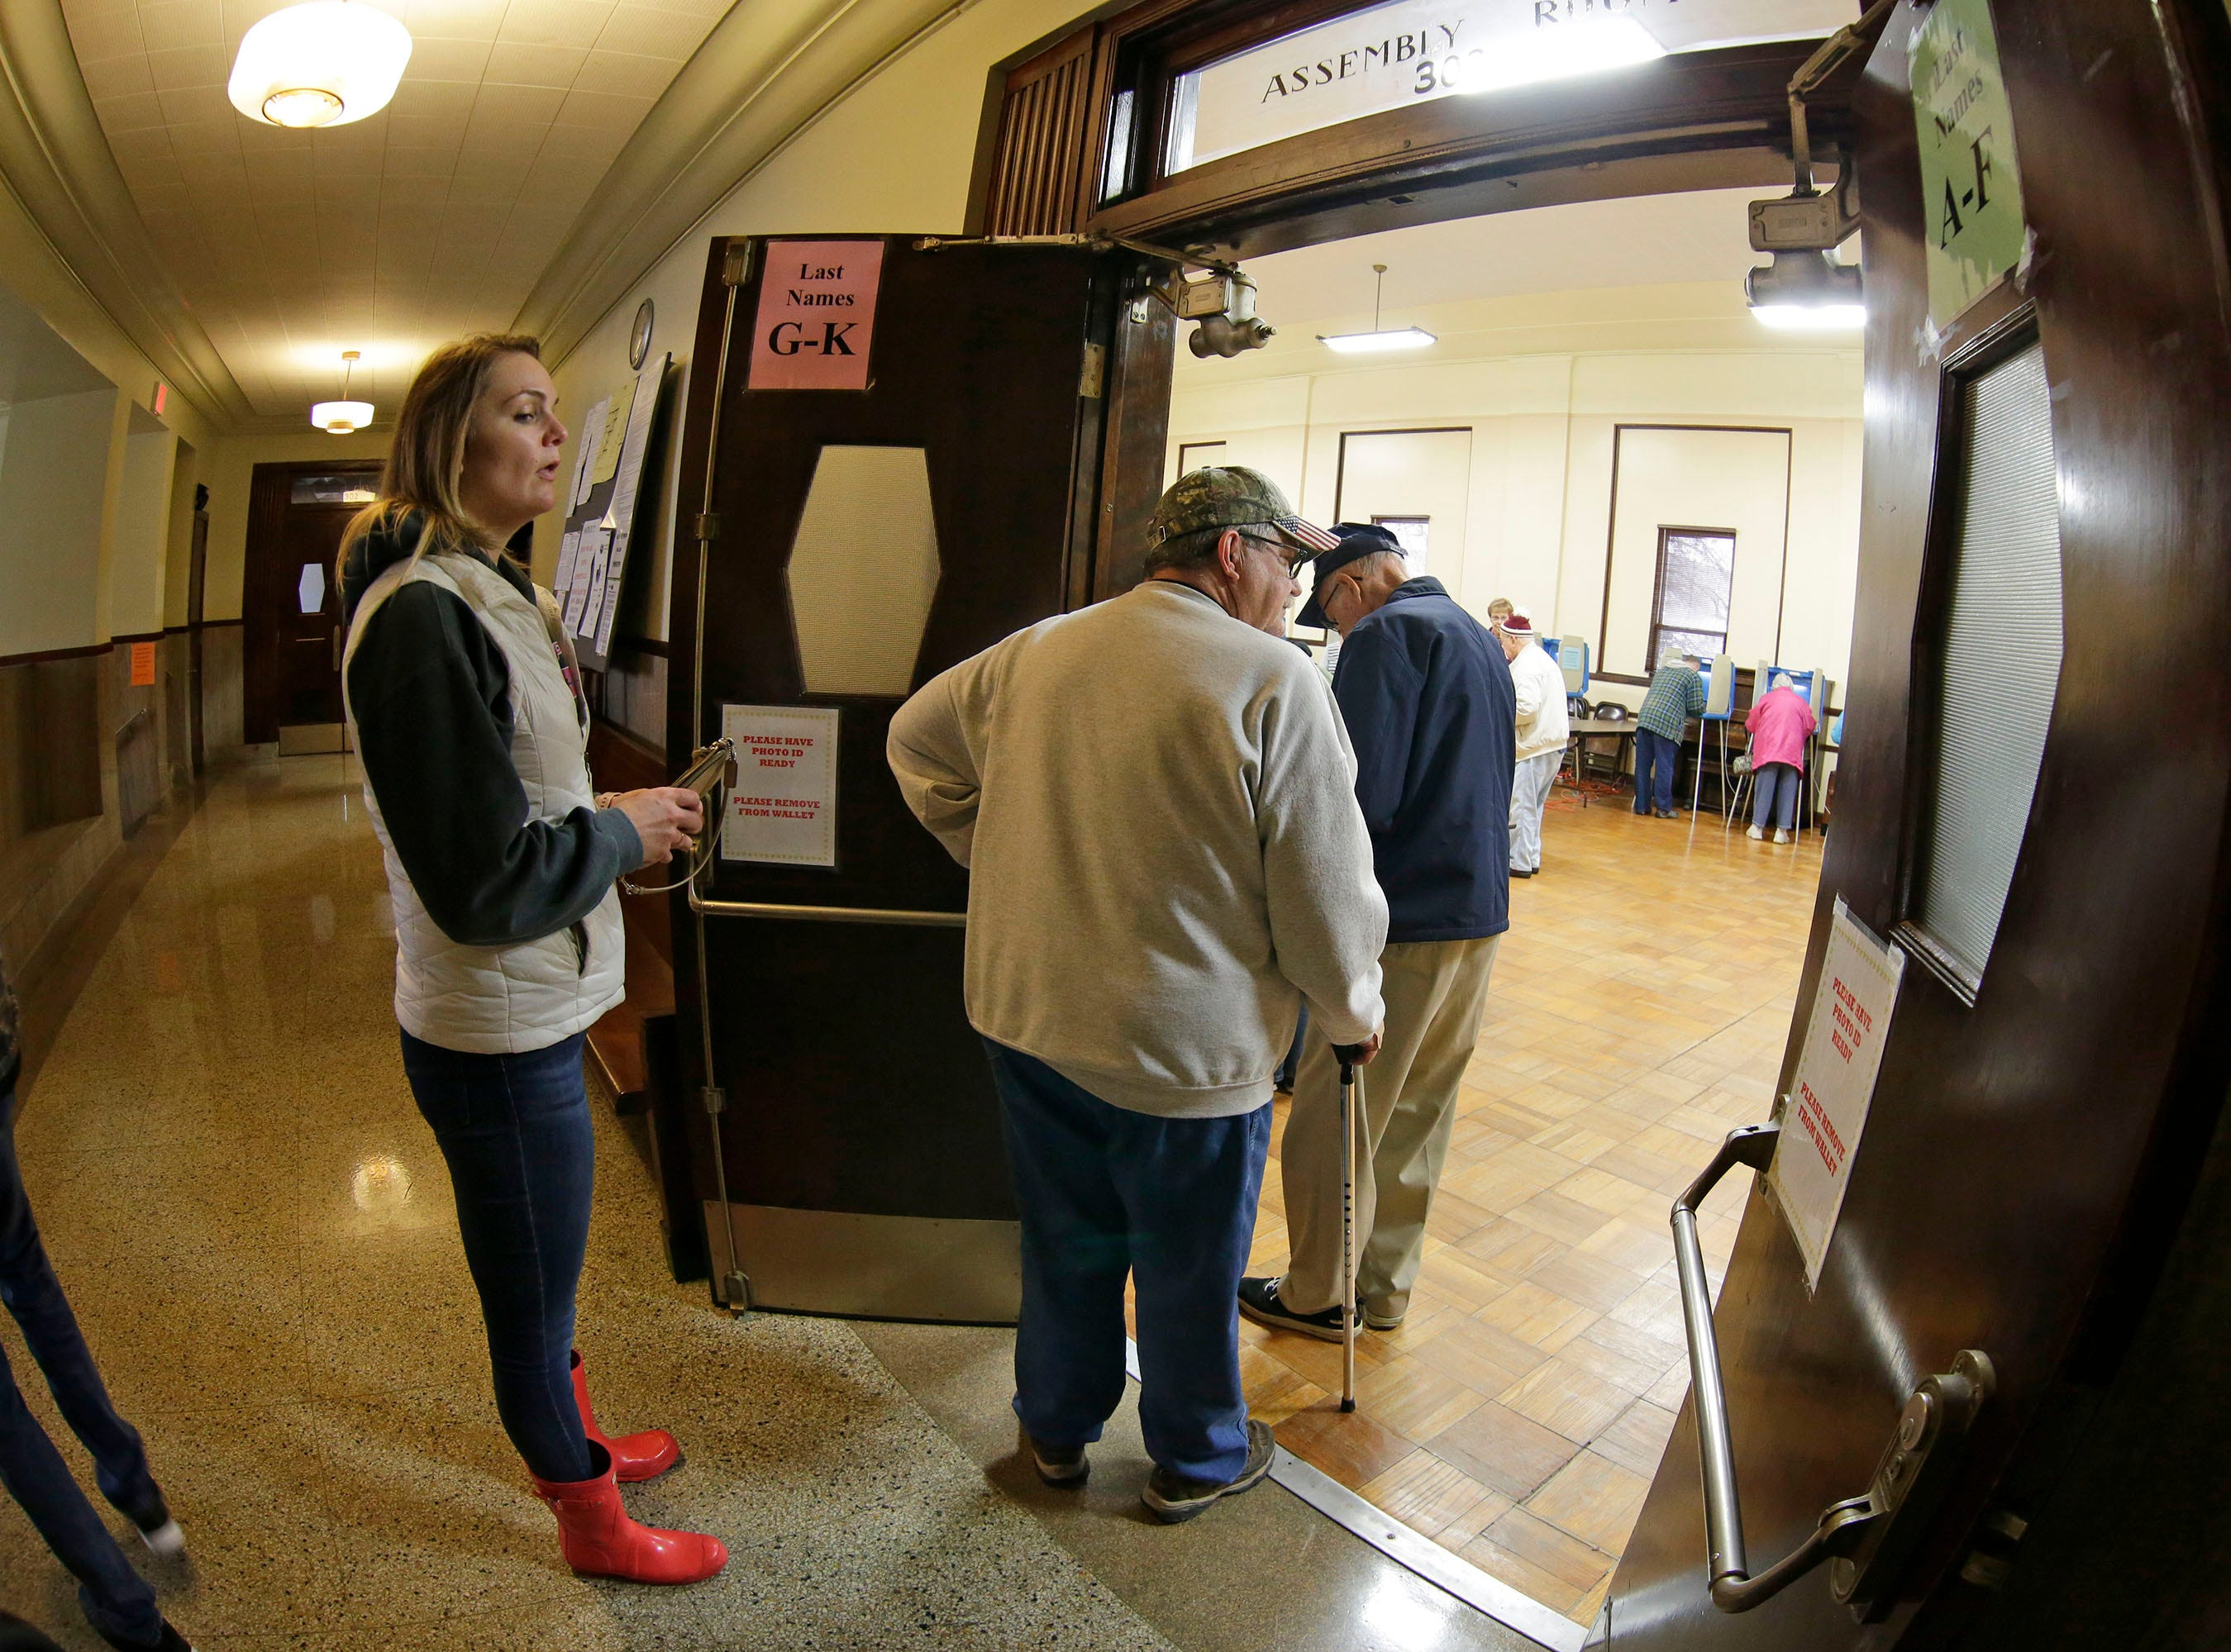 Voters enter the voting area at Plymouth City Hall, Tuesday, November 6, 2018, in Plymouth, Wis.